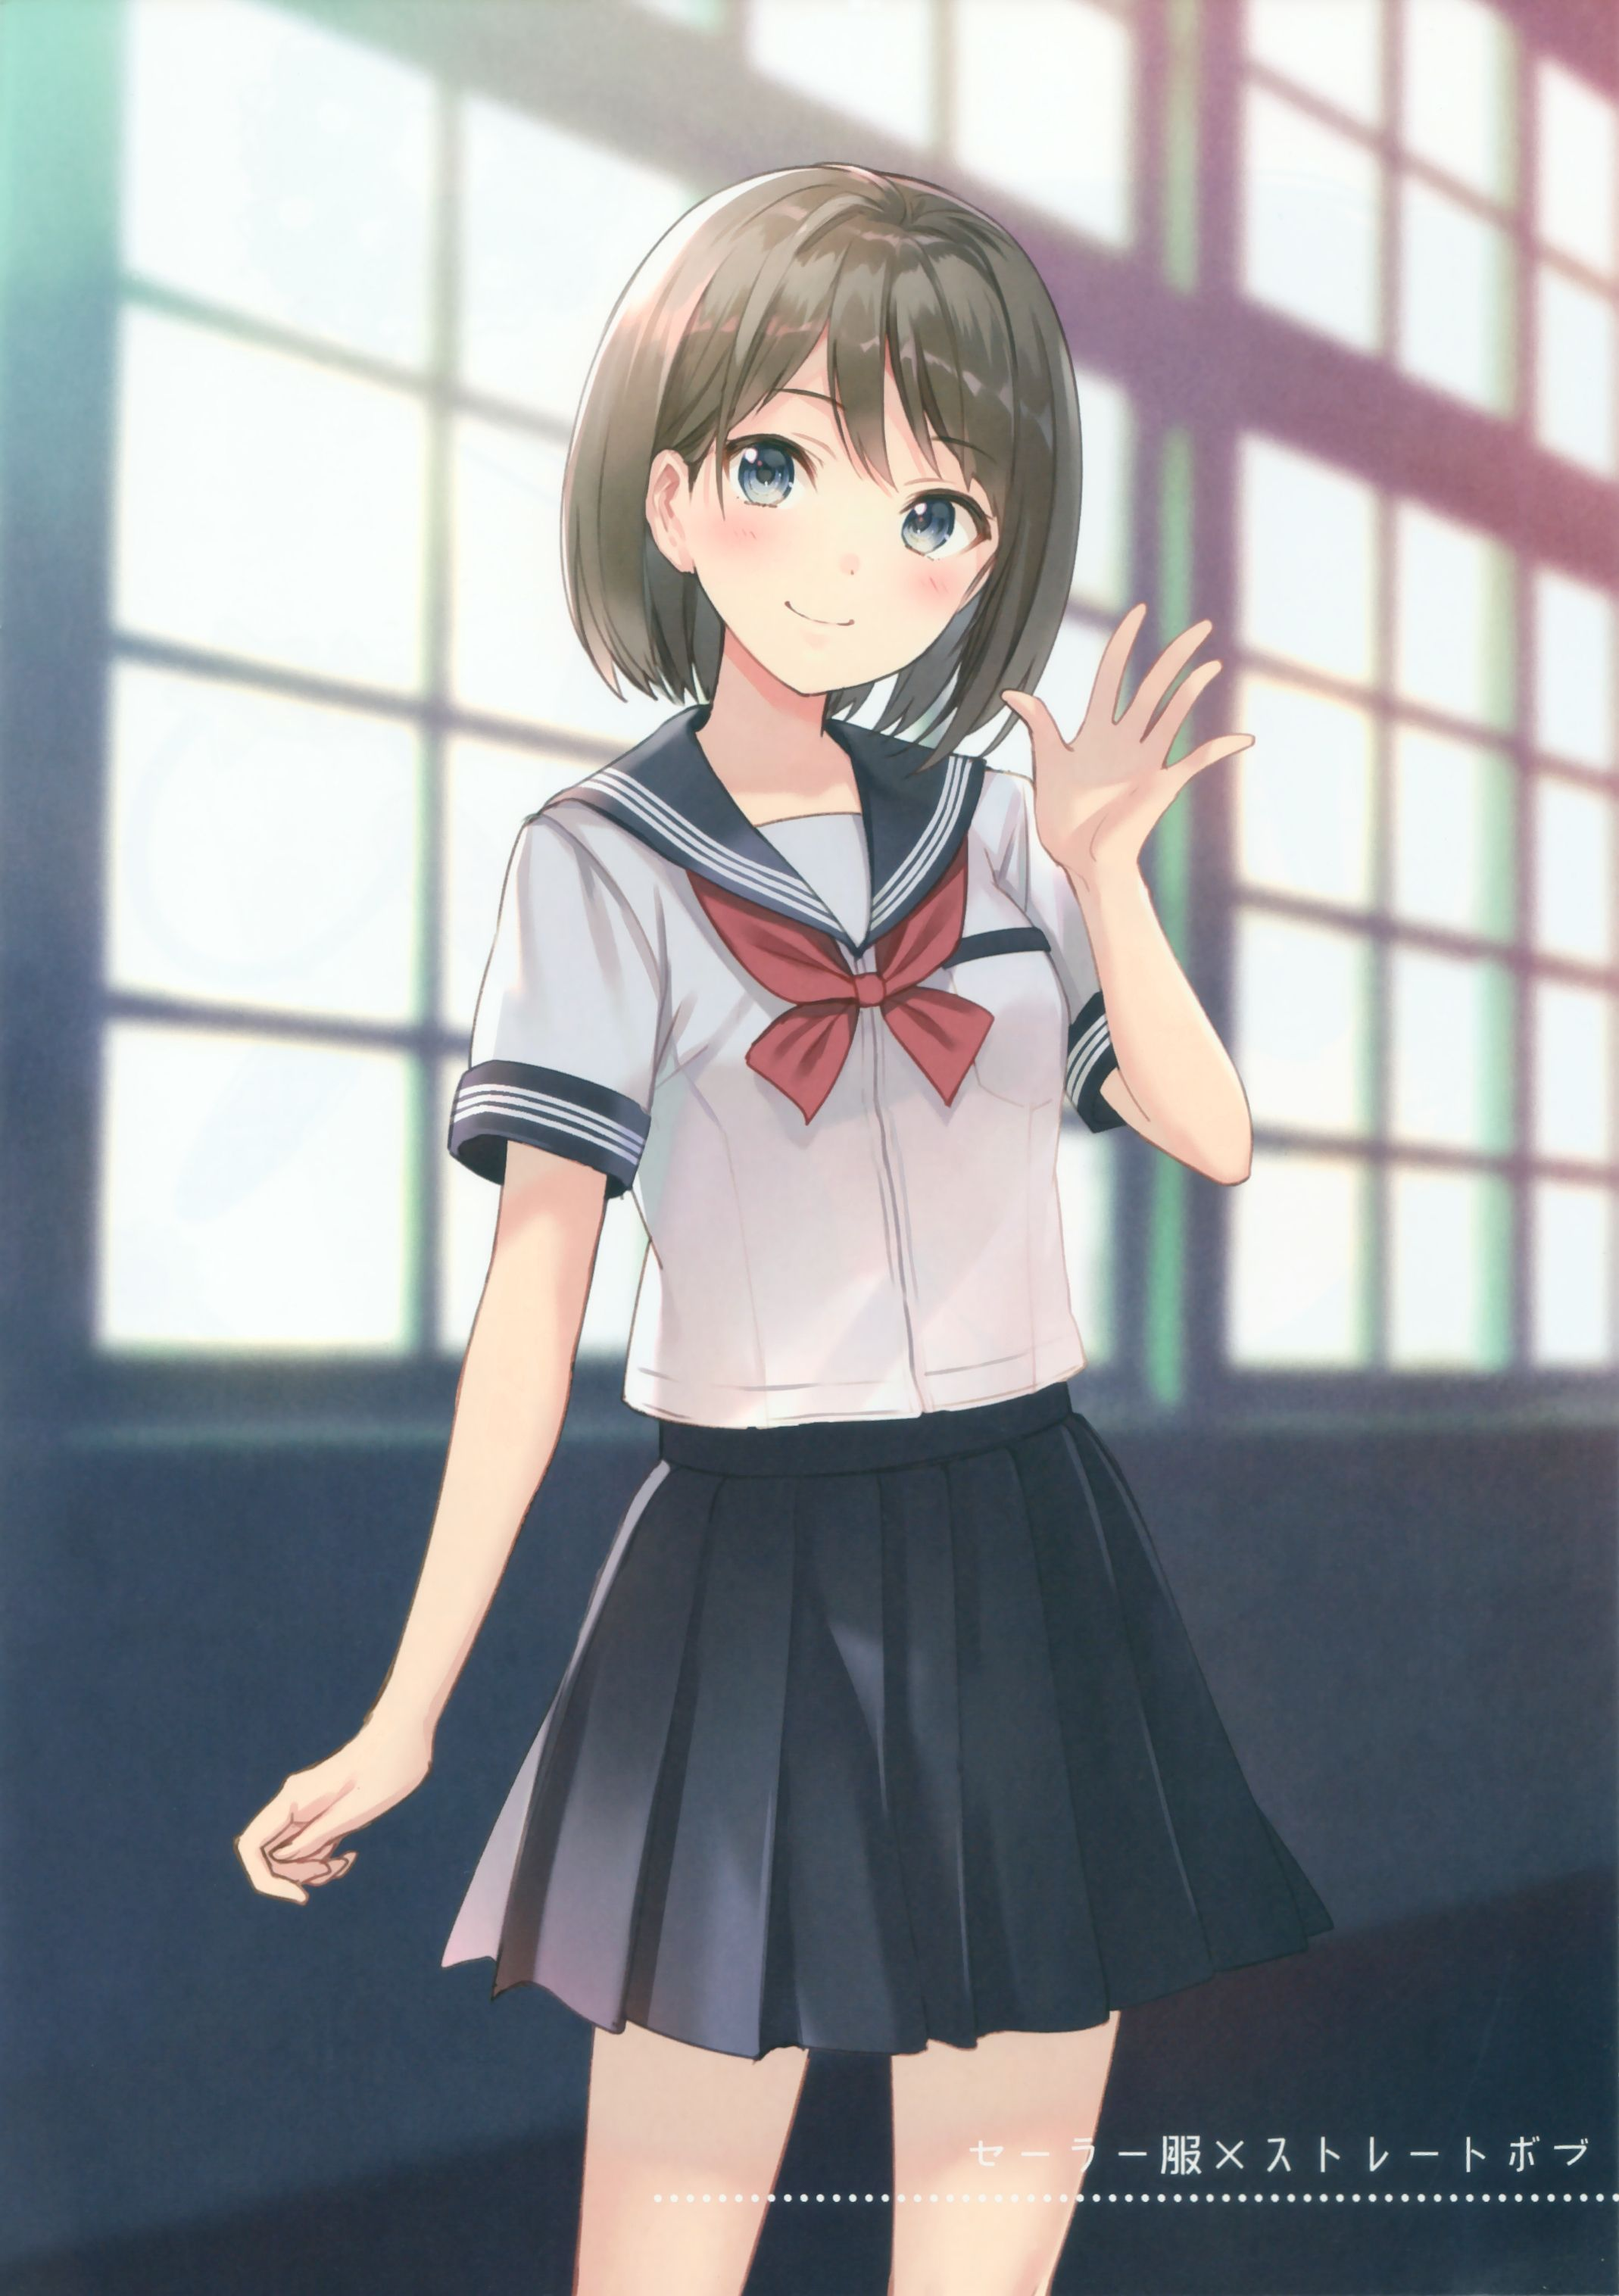 Anime Girl School Uniform Smiling Anime